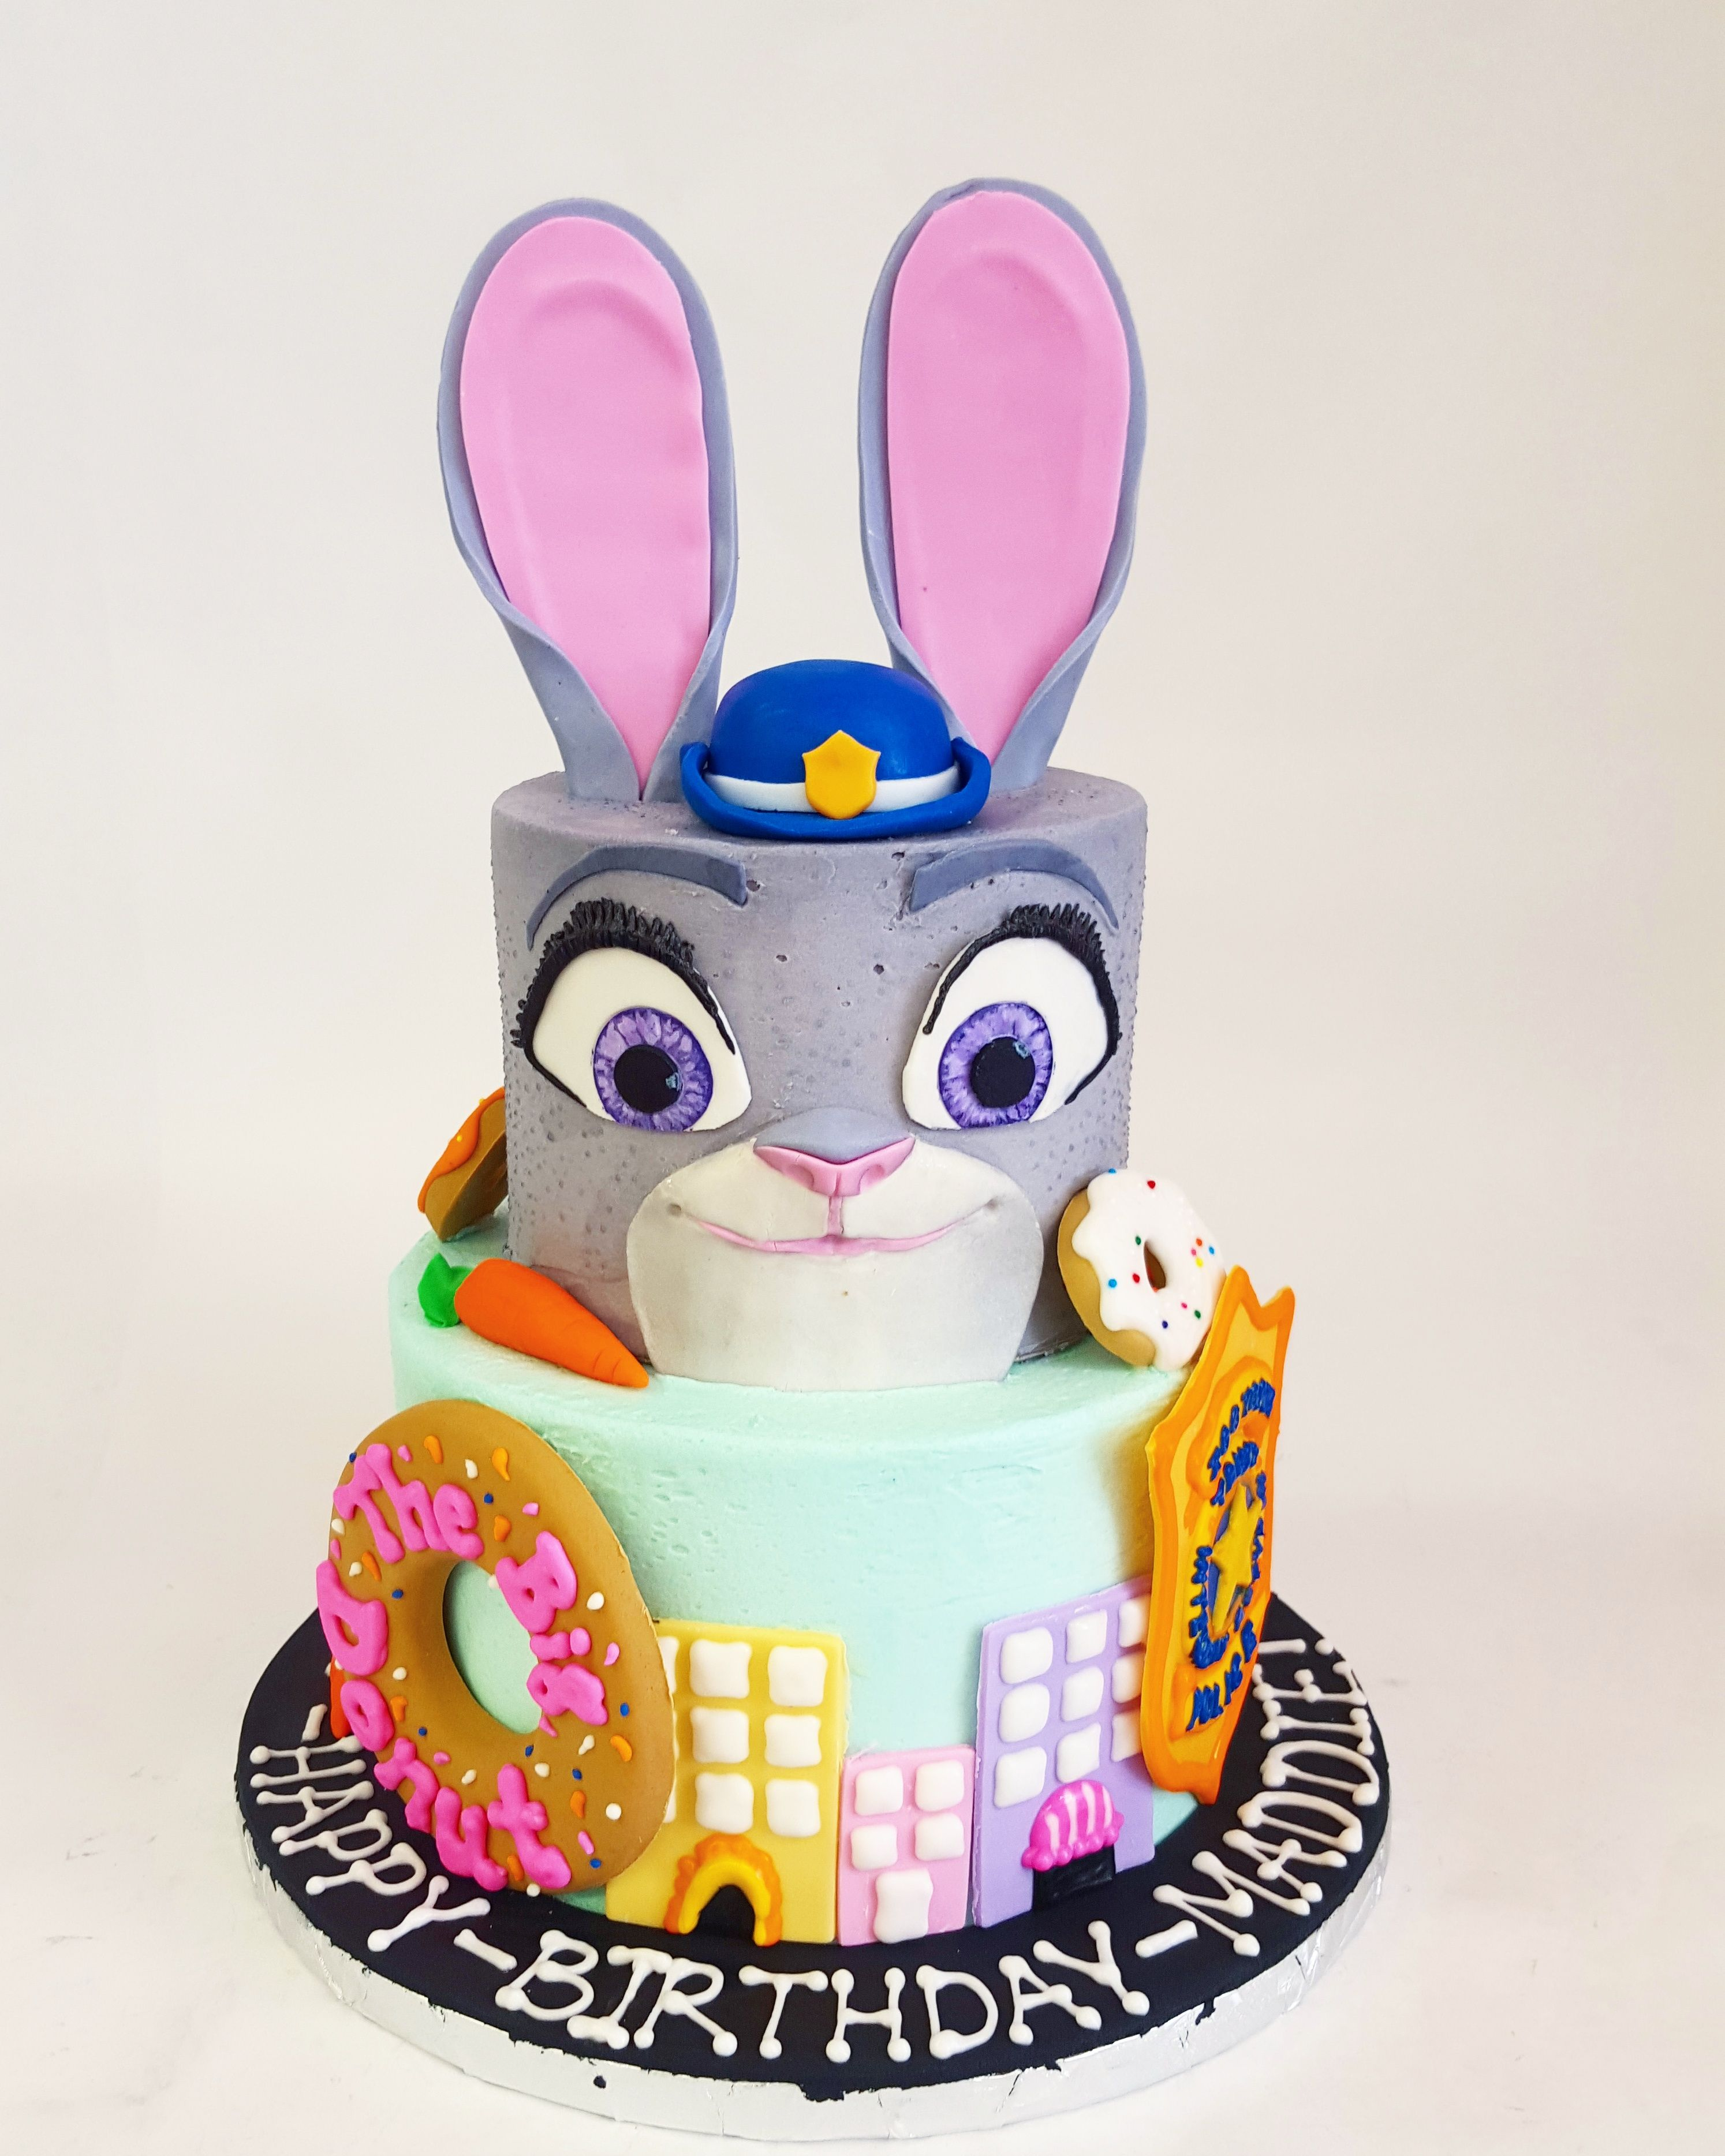 This Zootopia cake would make Judy Hopps one happy bunny ...